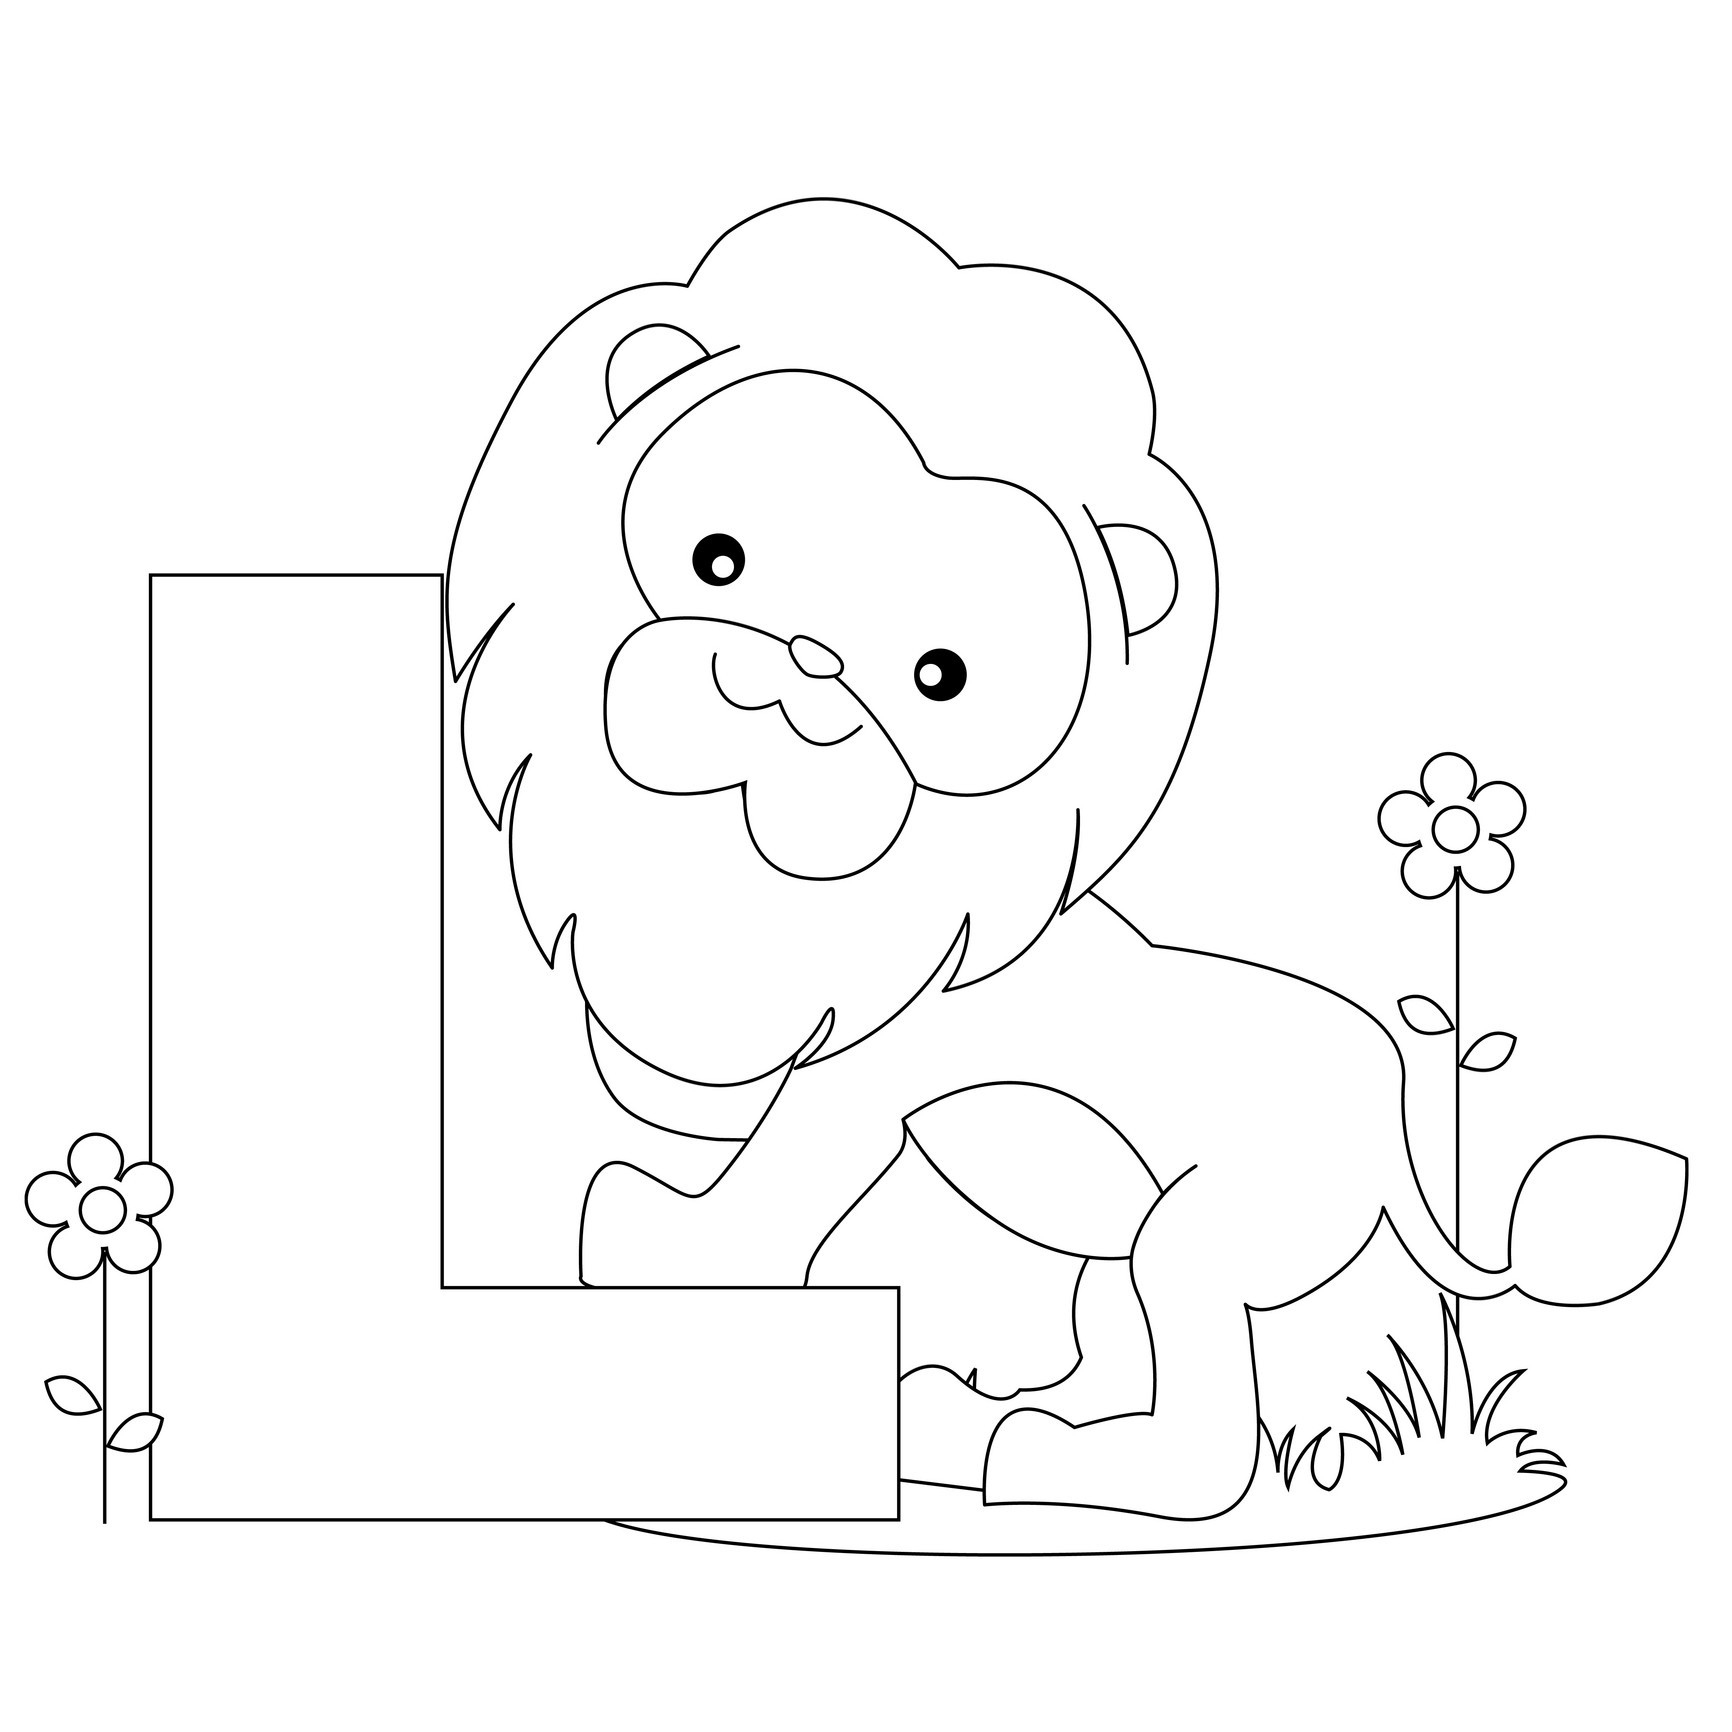 l coloring pages free printable alphabet coloring pages for kids best